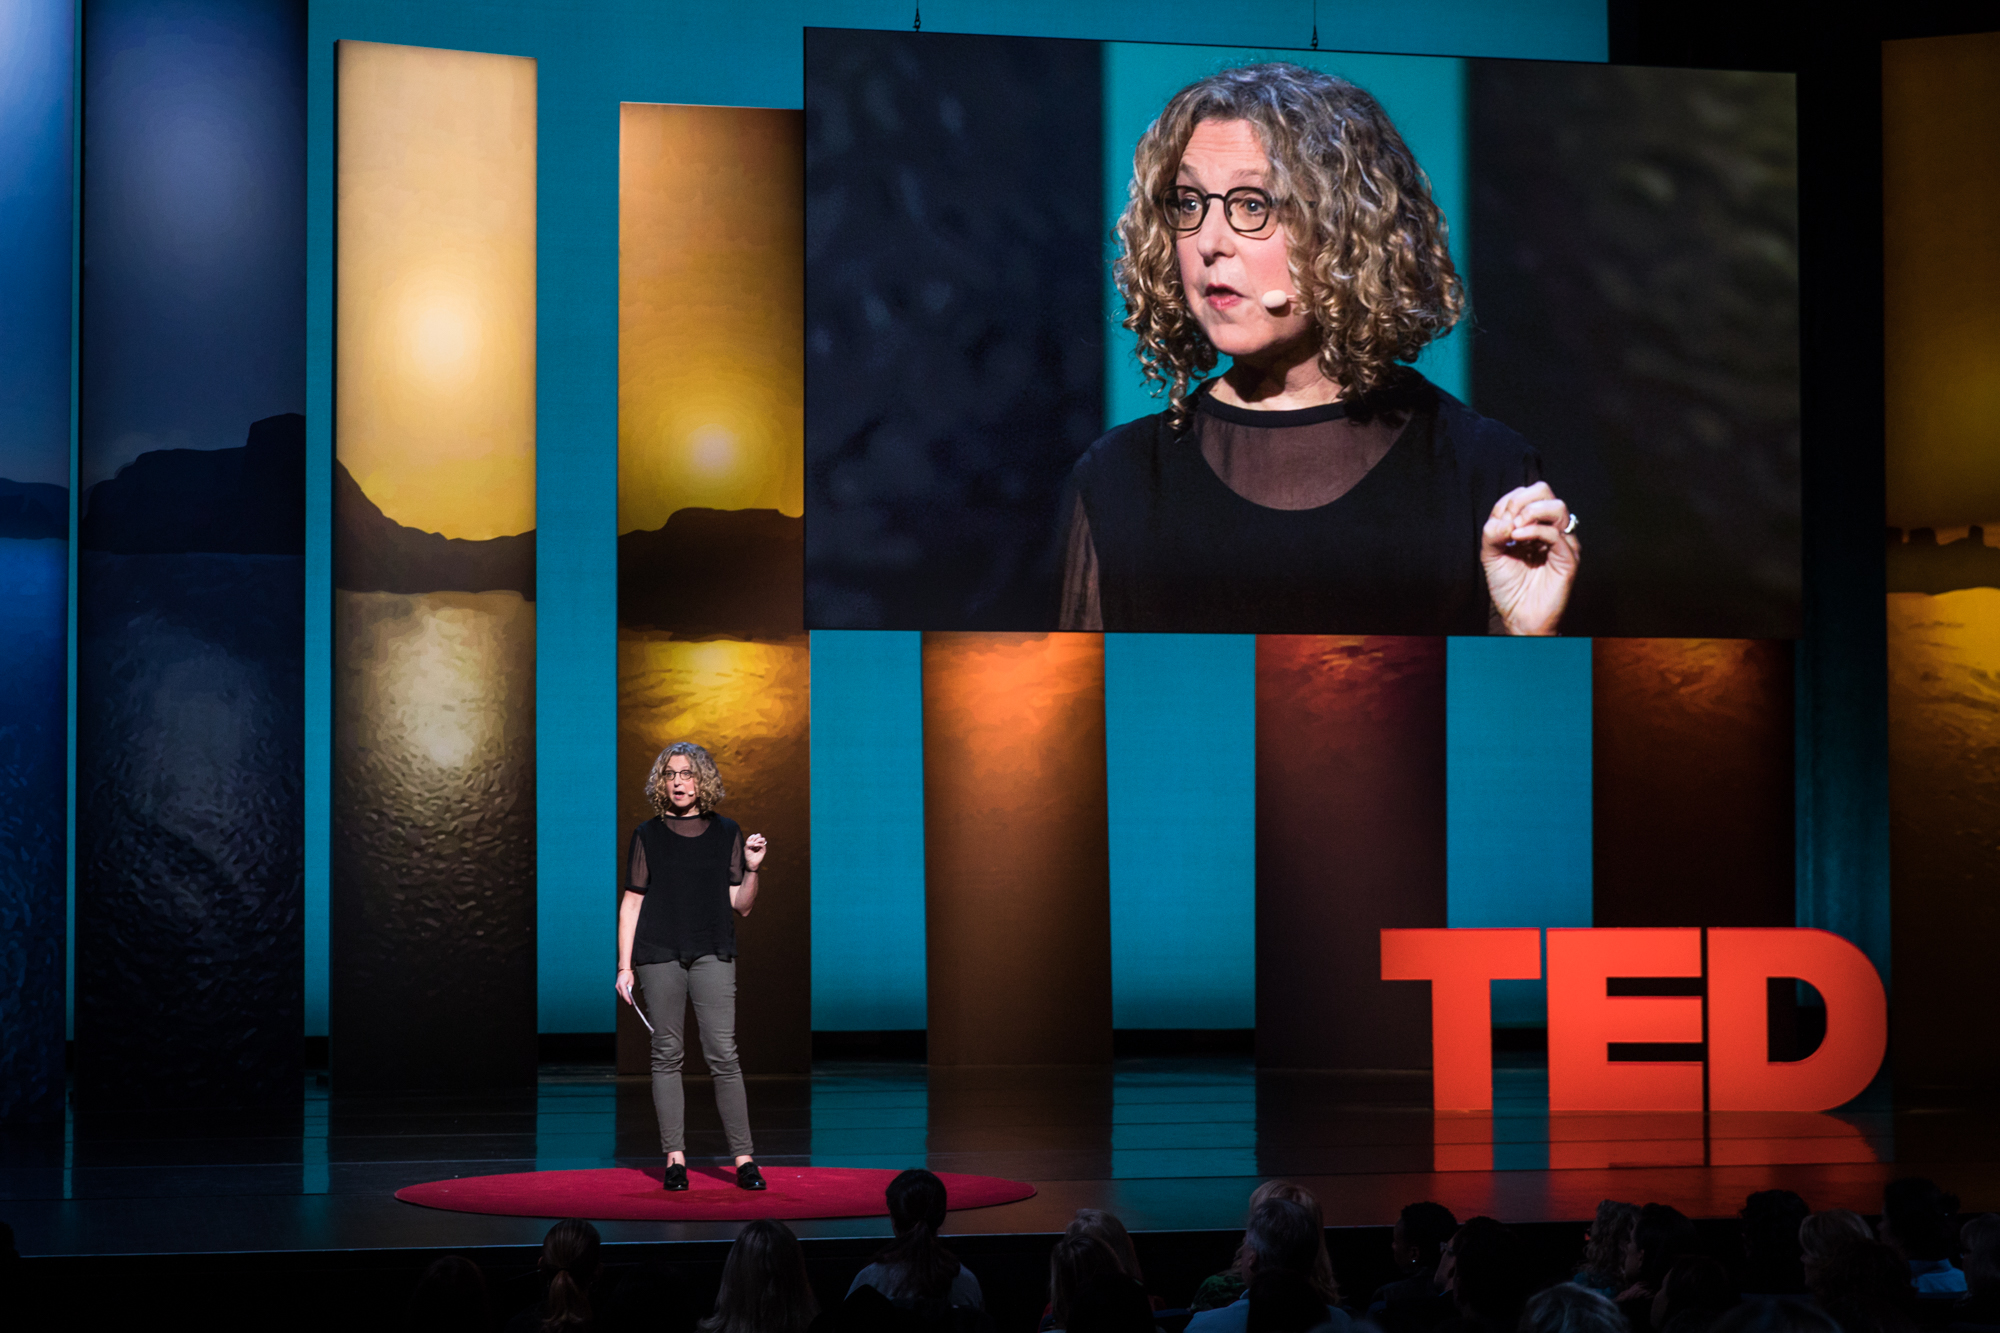 Peggy Orenstein at TEDWomen 2016 - It's About Time, October 26-28, 2016, Yerba Buena Centre for the Arts, San Francisco, California. Photo: Marla Aufmuth / TED